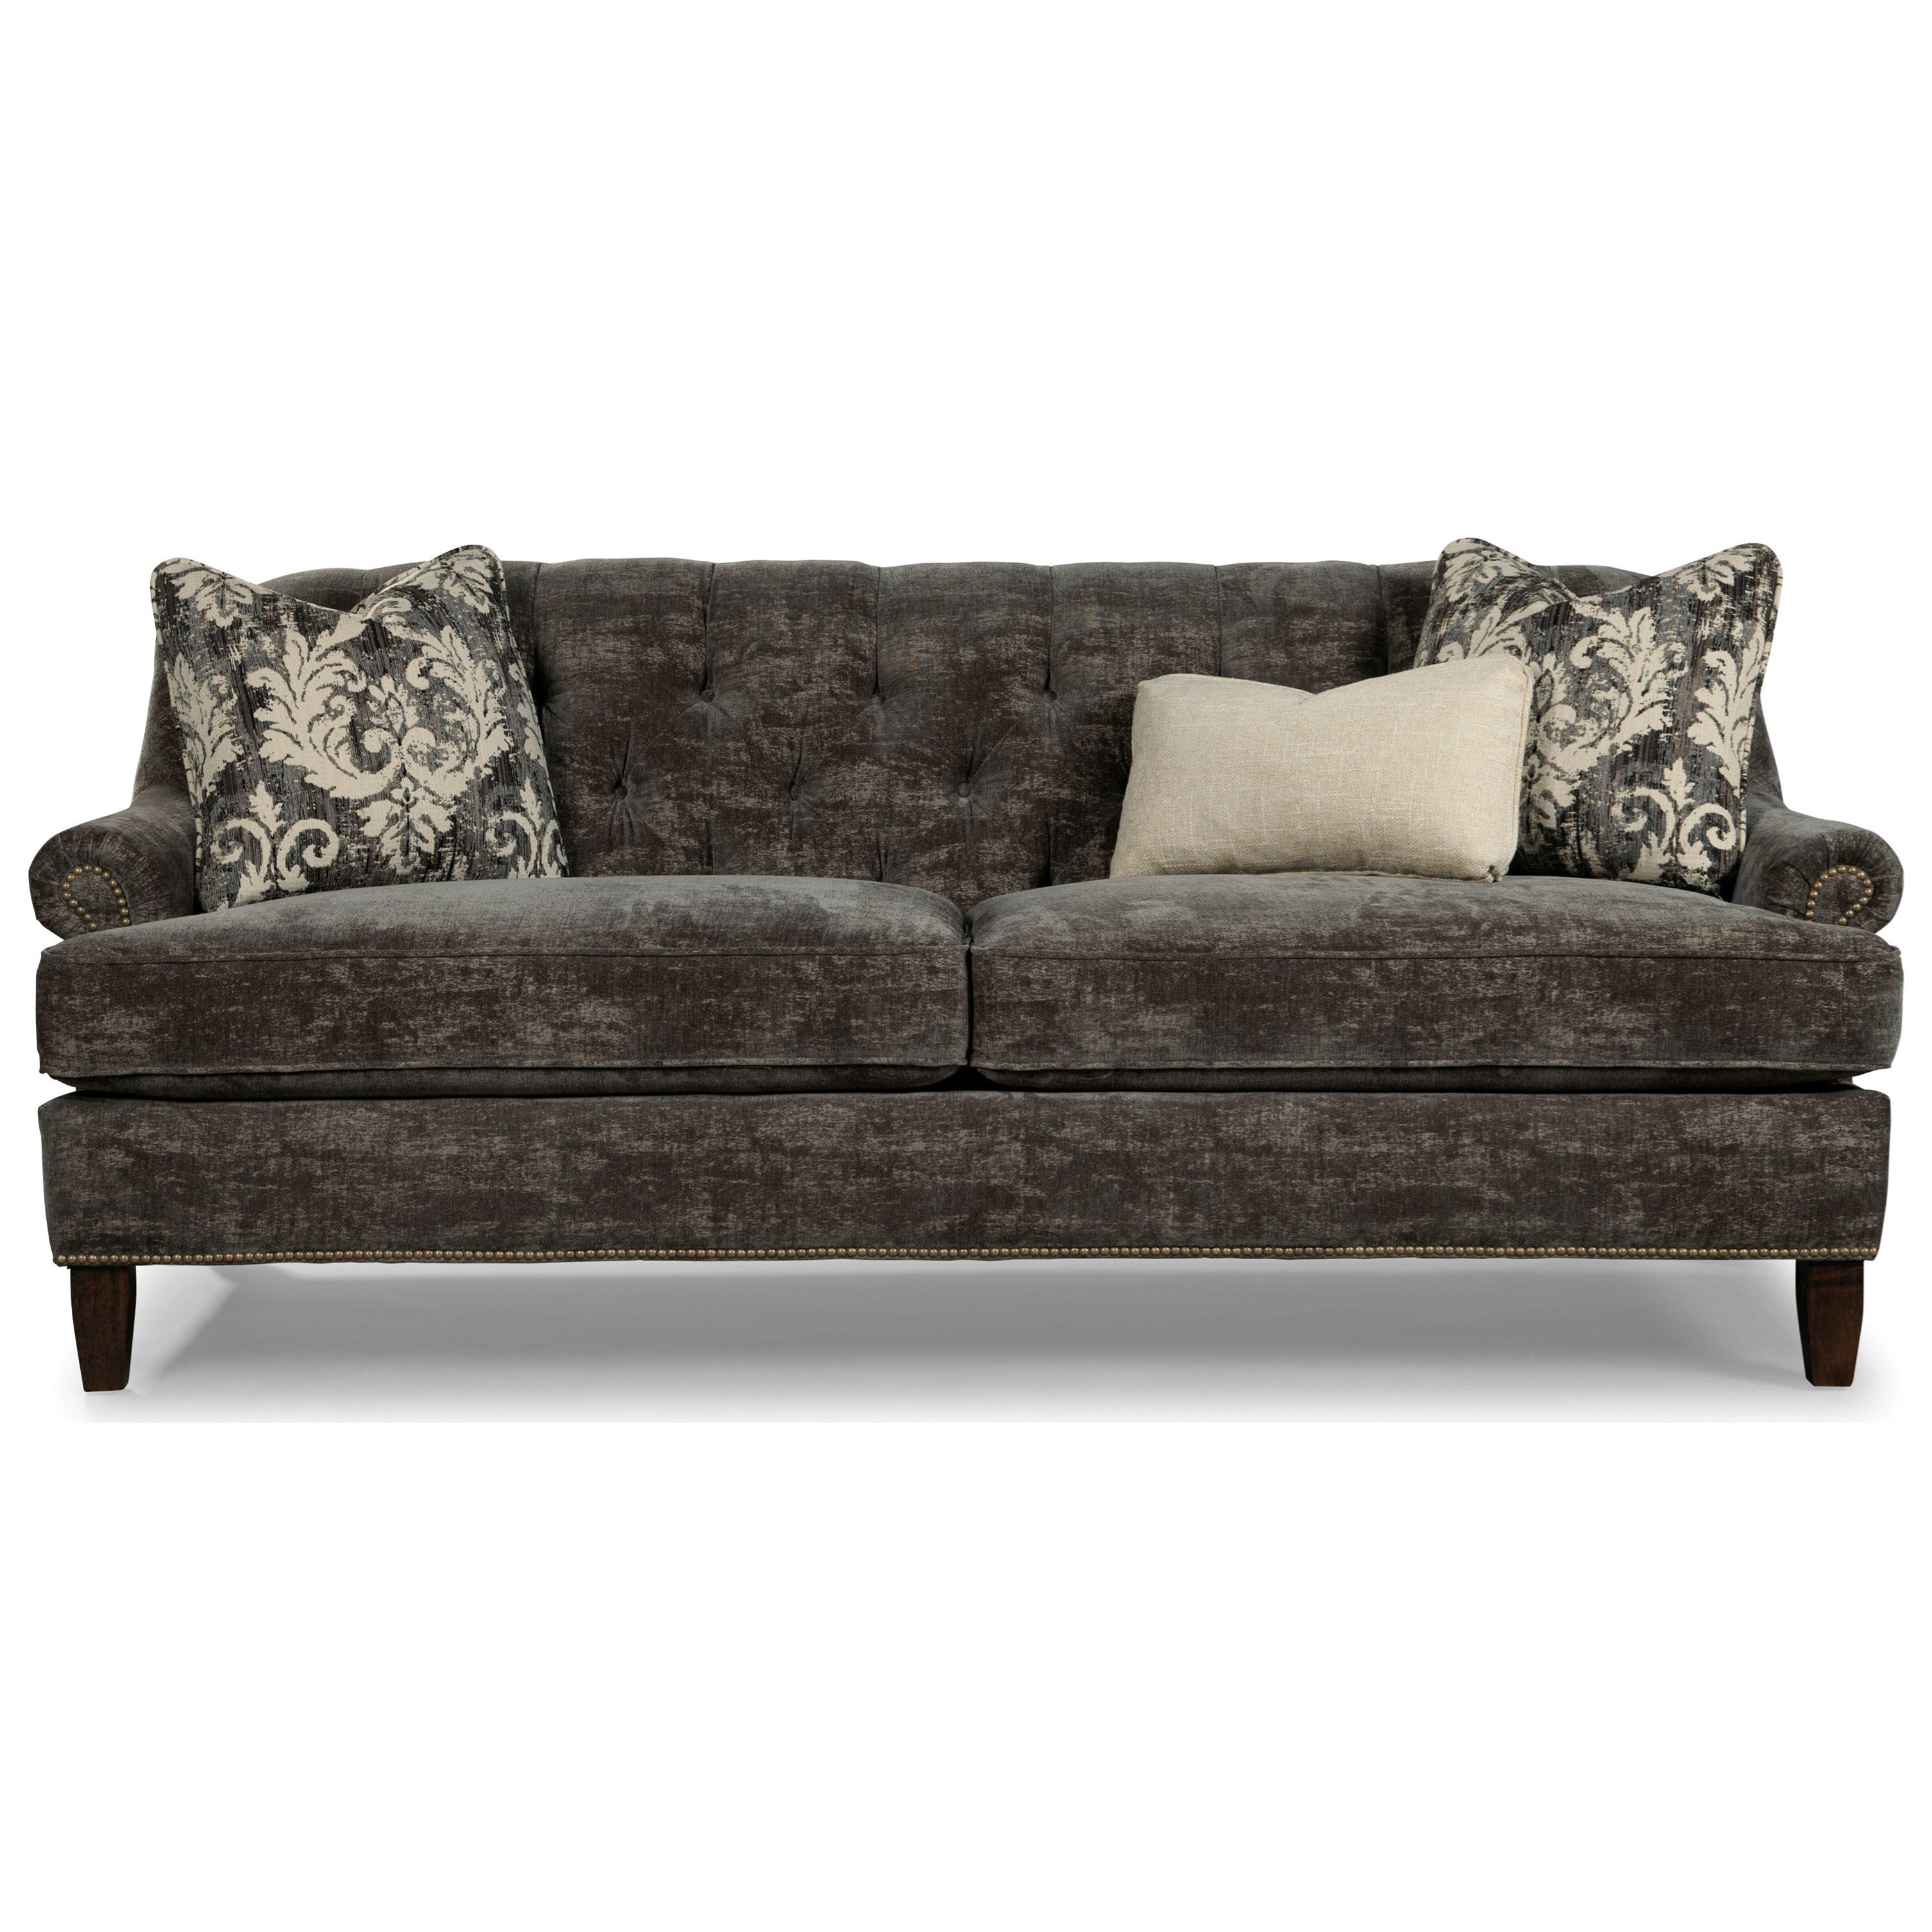 Rachael Ray Home By Craftmaster 7614   7615   7616Sofa W/ Brass Nailheads  ...